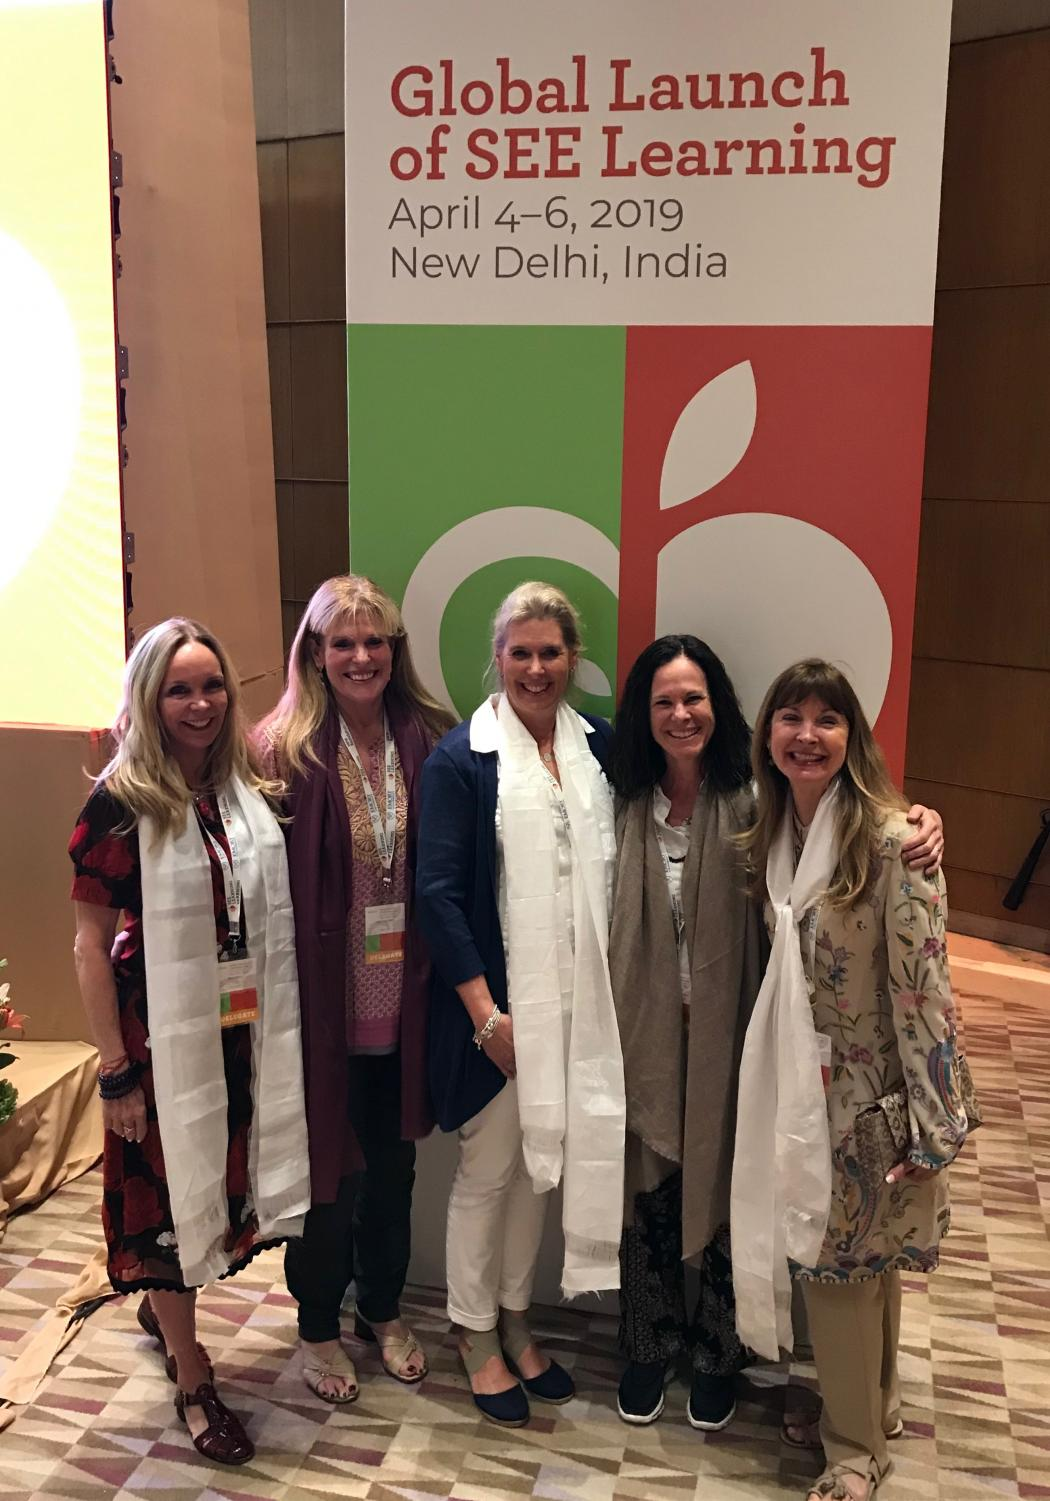 Megan Noonan (second from right) at the SEE Learning Curriculum Launch in New Delhi, April 4-6, 2019.